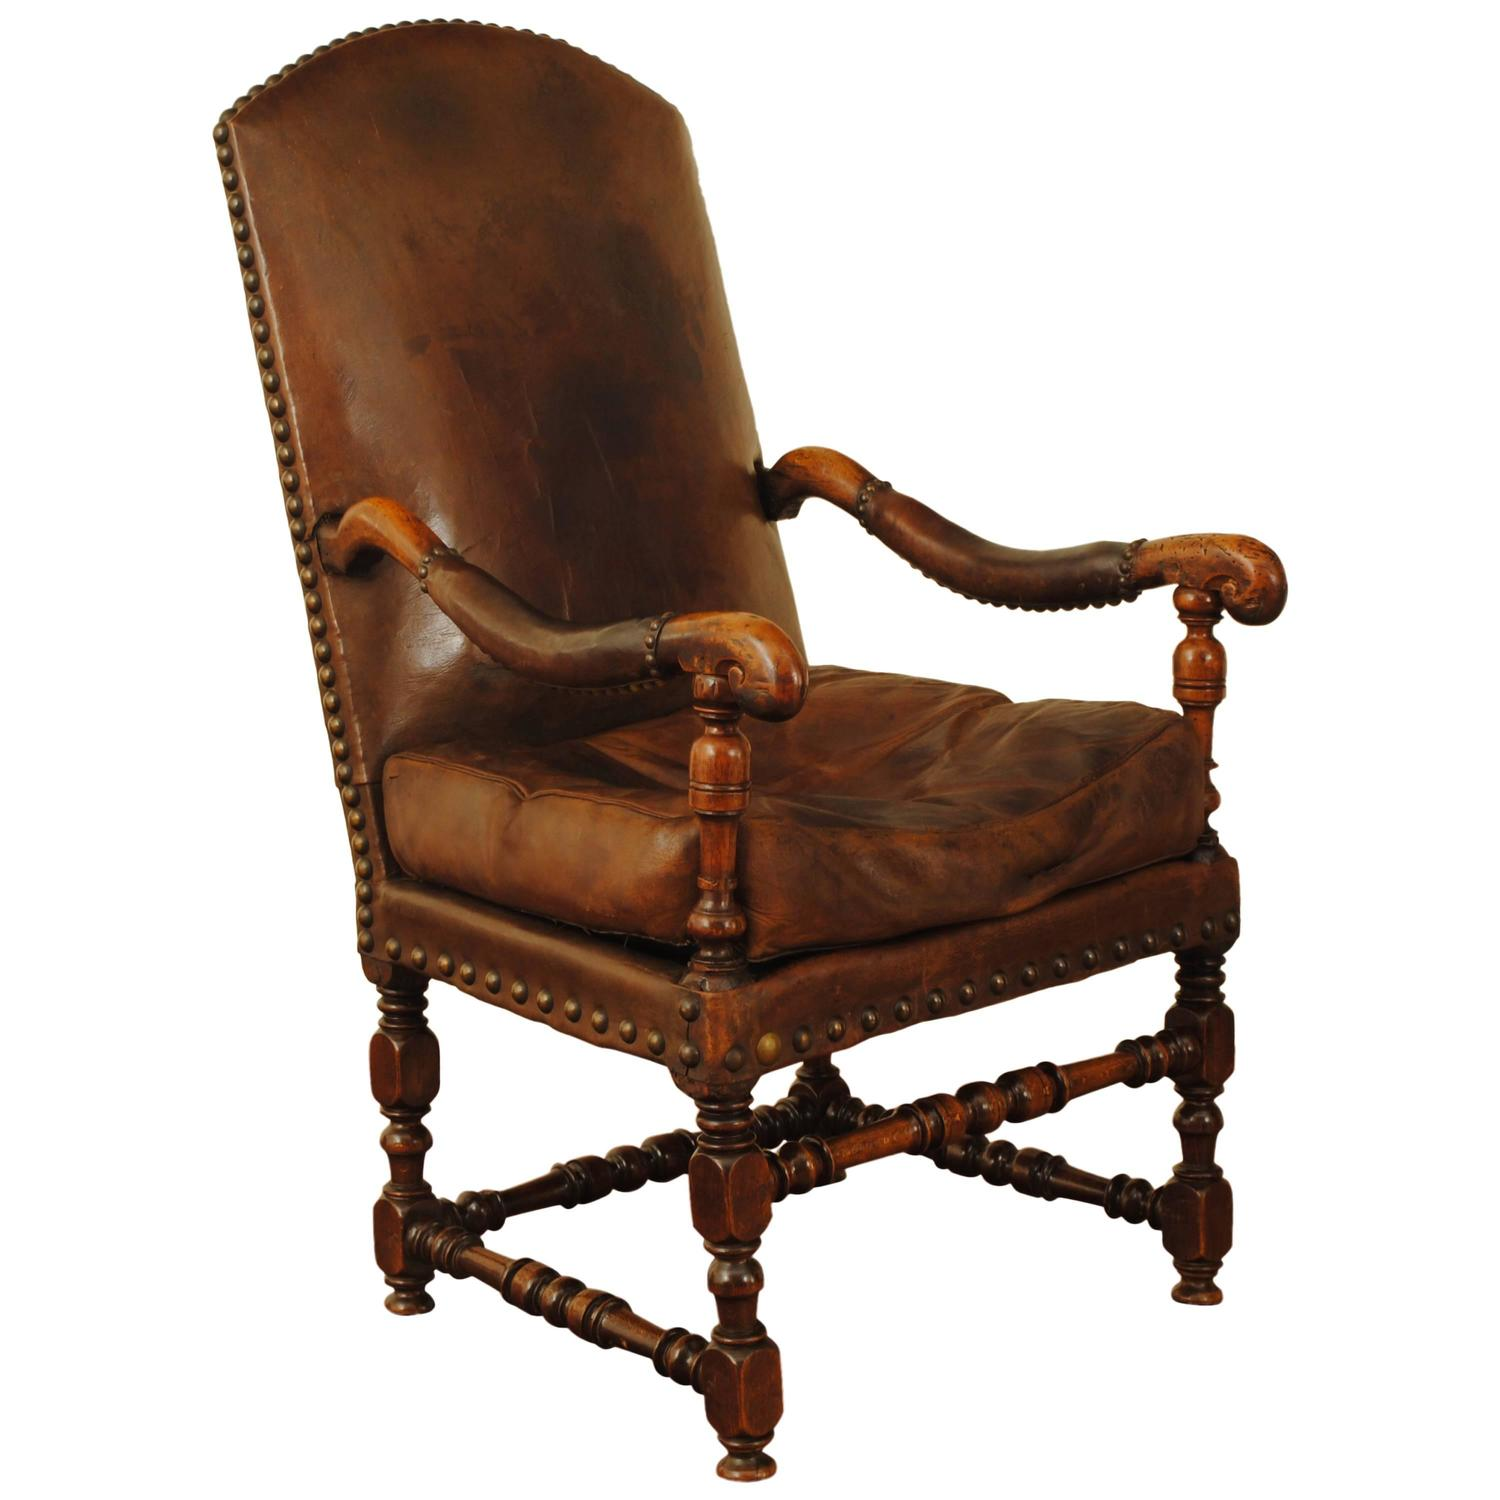 french louis xiii period walnut and leather upholstered fauteuil at 1stdibs. Black Bedroom Furniture Sets. Home Design Ideas